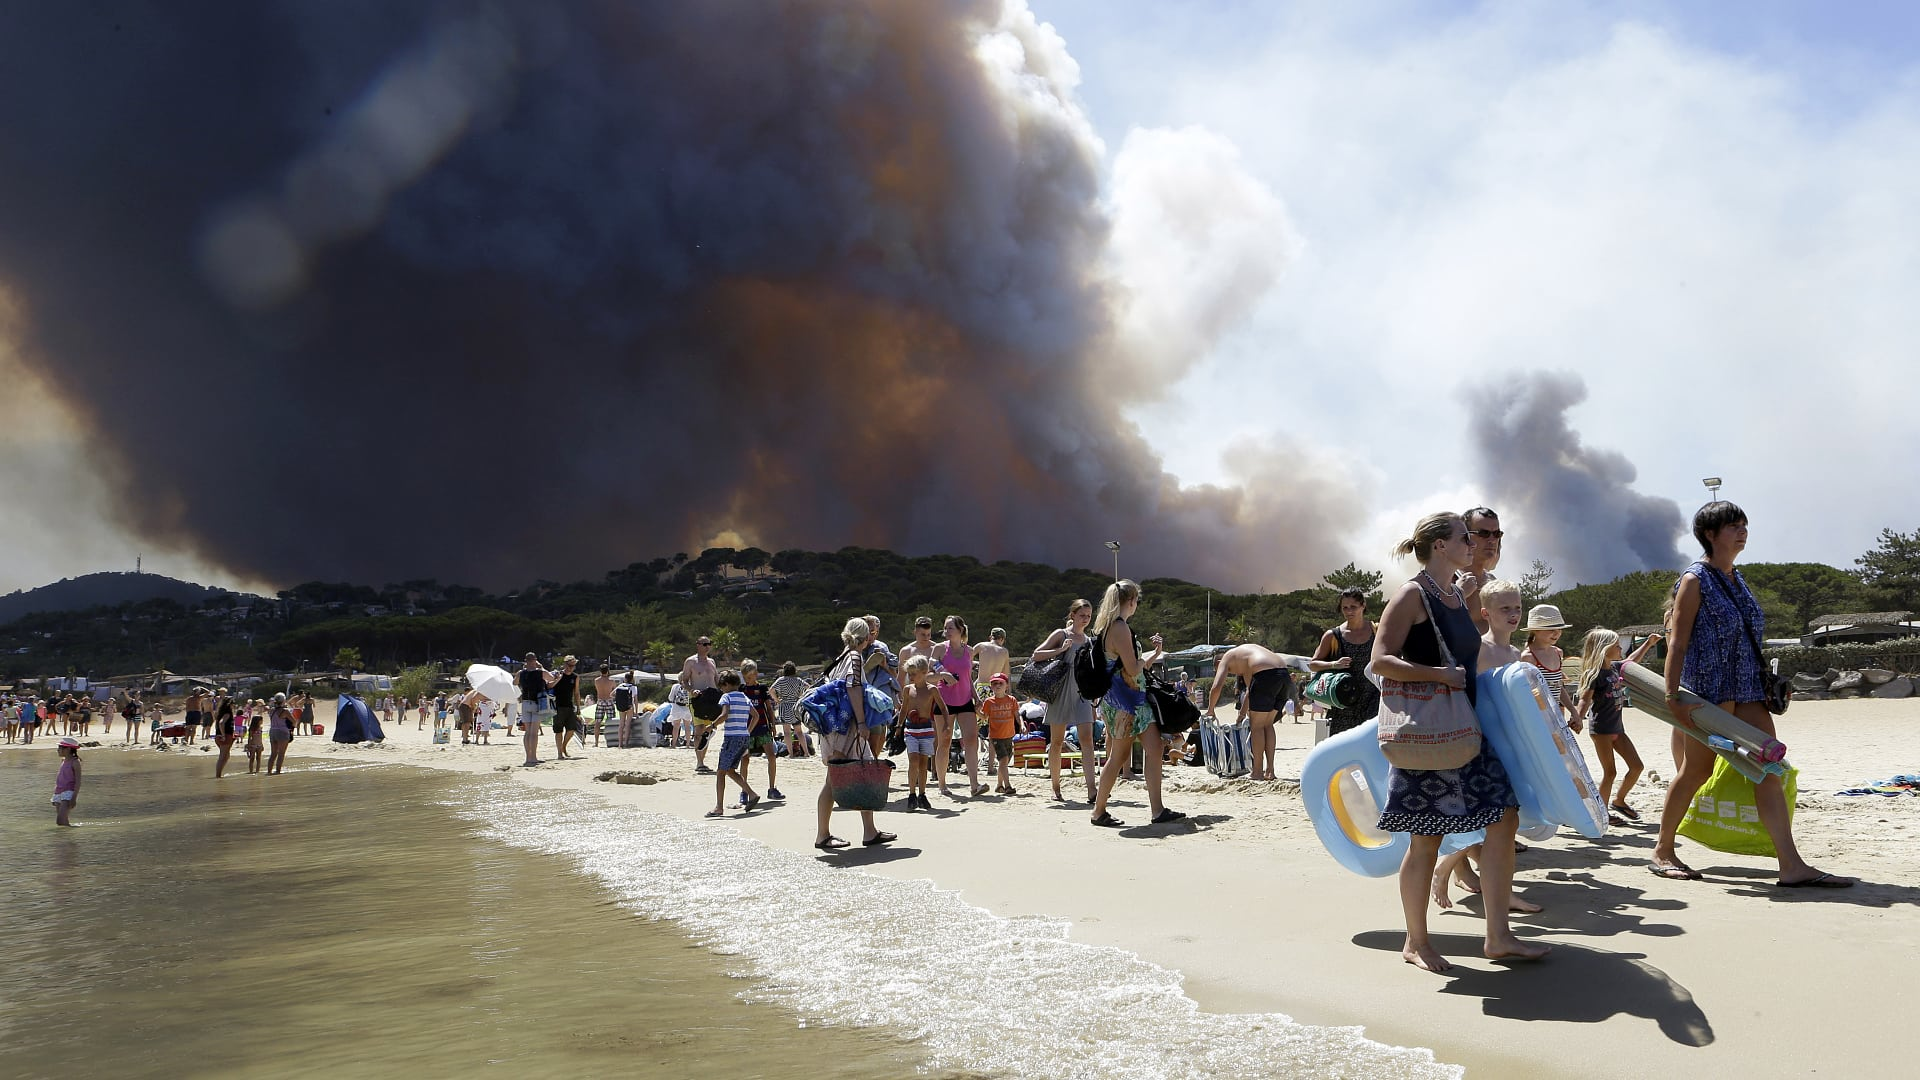 Mediterranean fire: What causes forest fires?